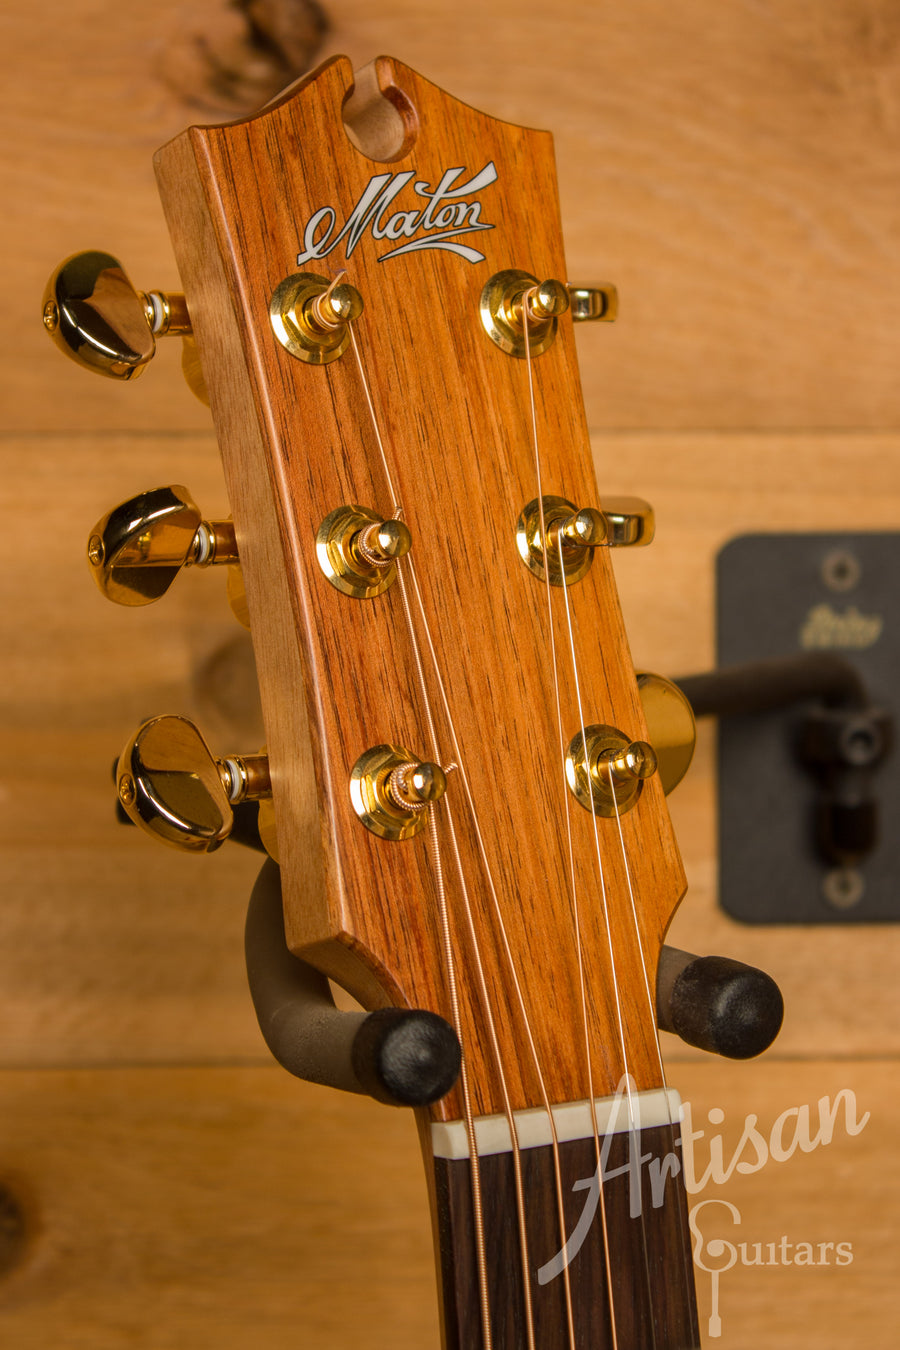 Maton EBG808 Artist Series Sitka Spruce and Blackwood ID-11321